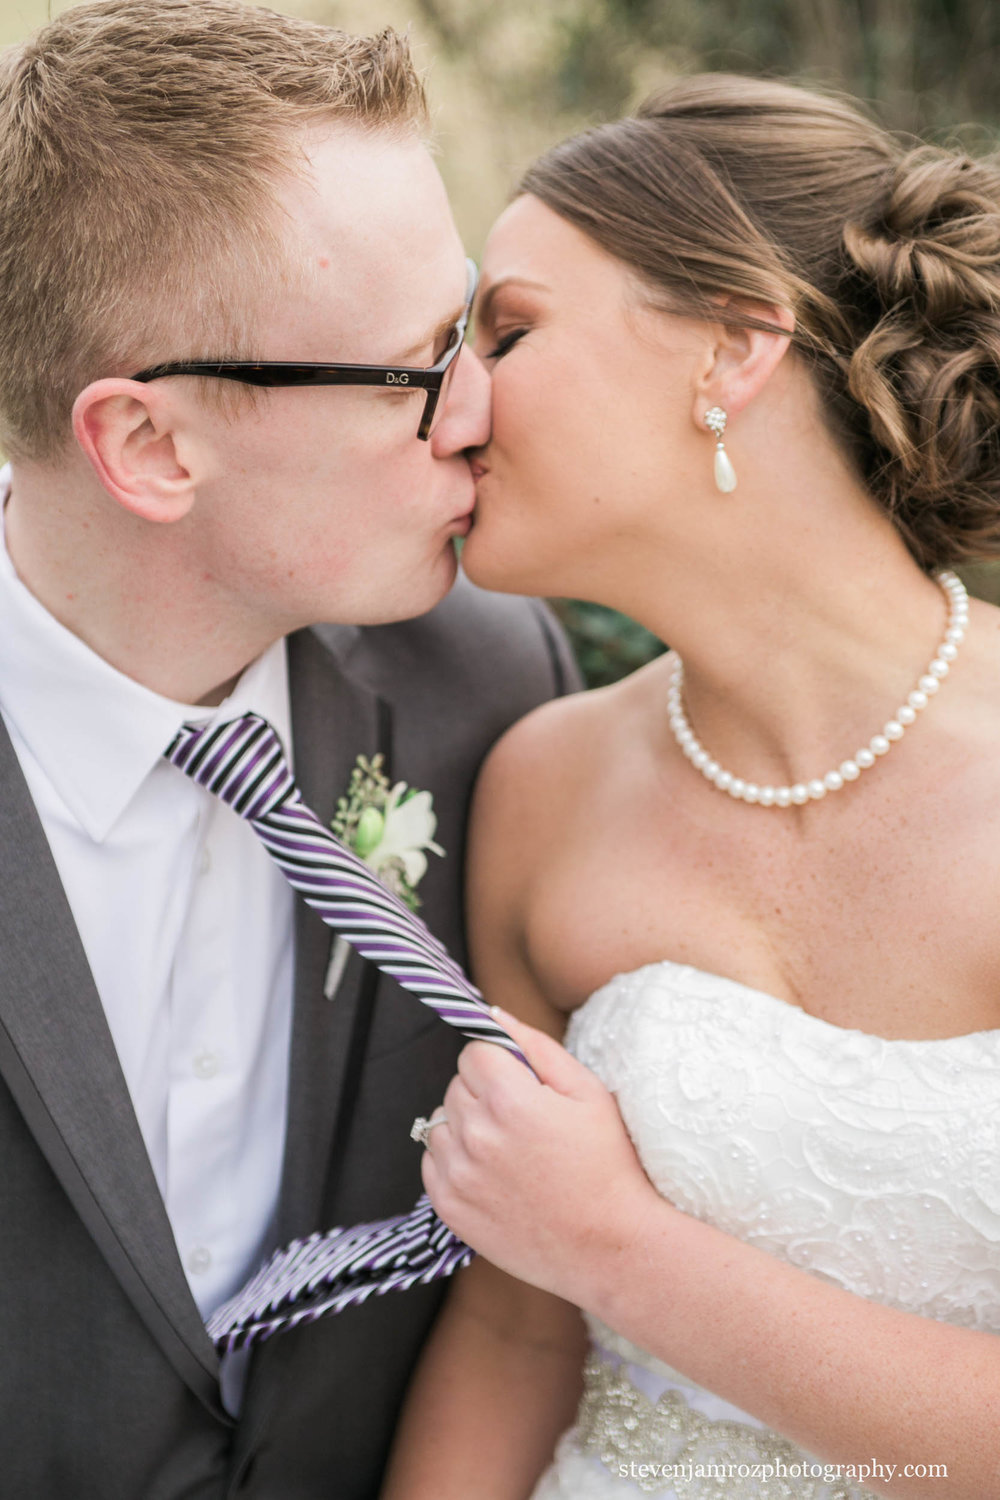 pulling-tie-bride-kiss-groom-wedding-steven-jamroz-photography-0177.jpg